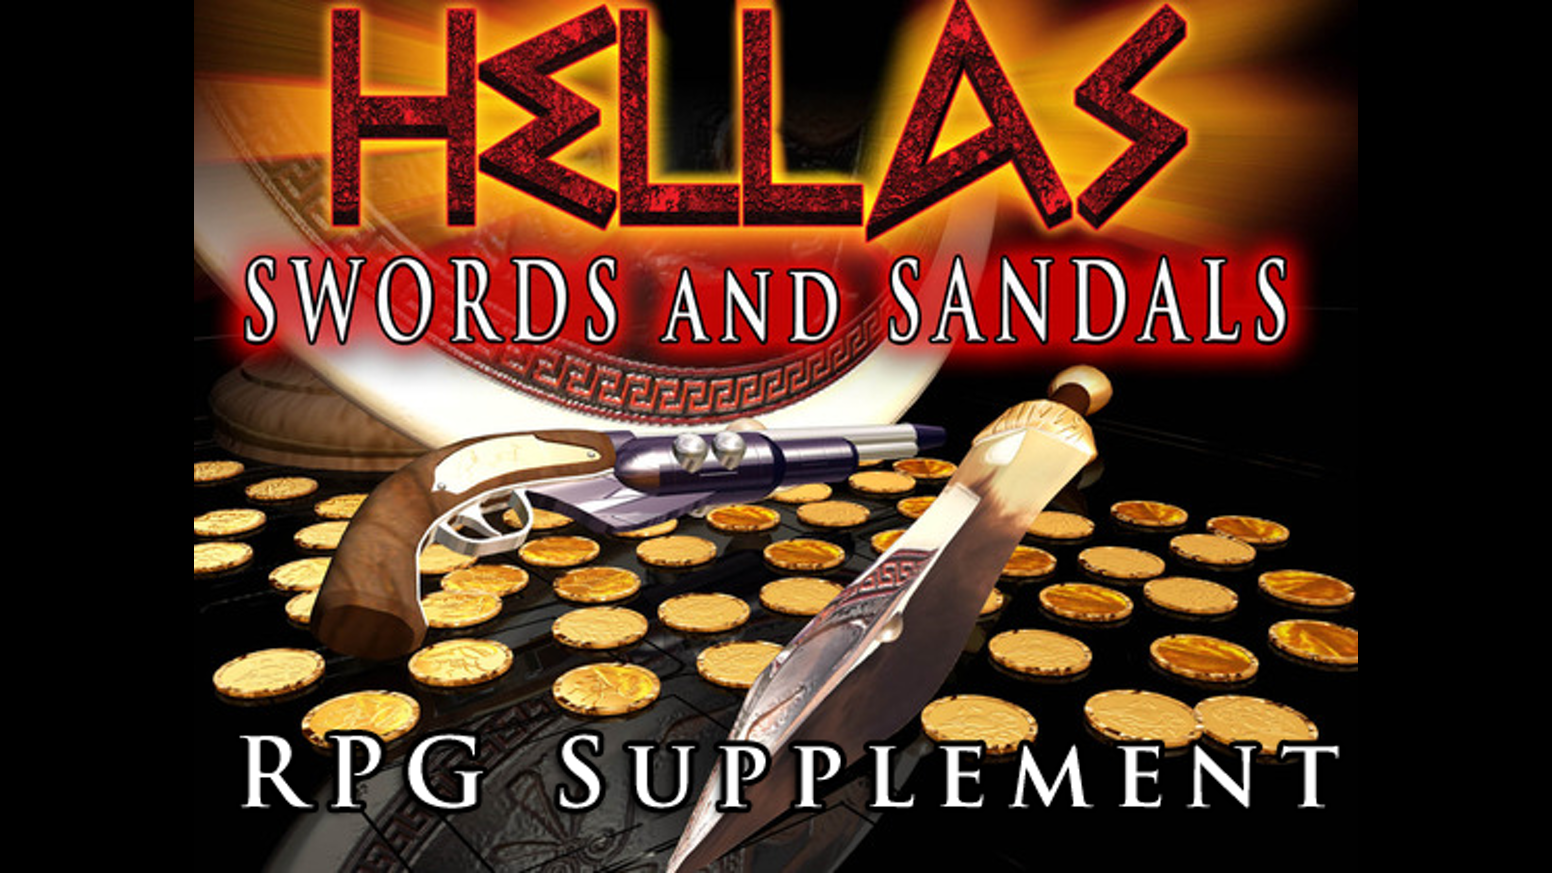 Swords and sandals - Hellas Swords And Sandals